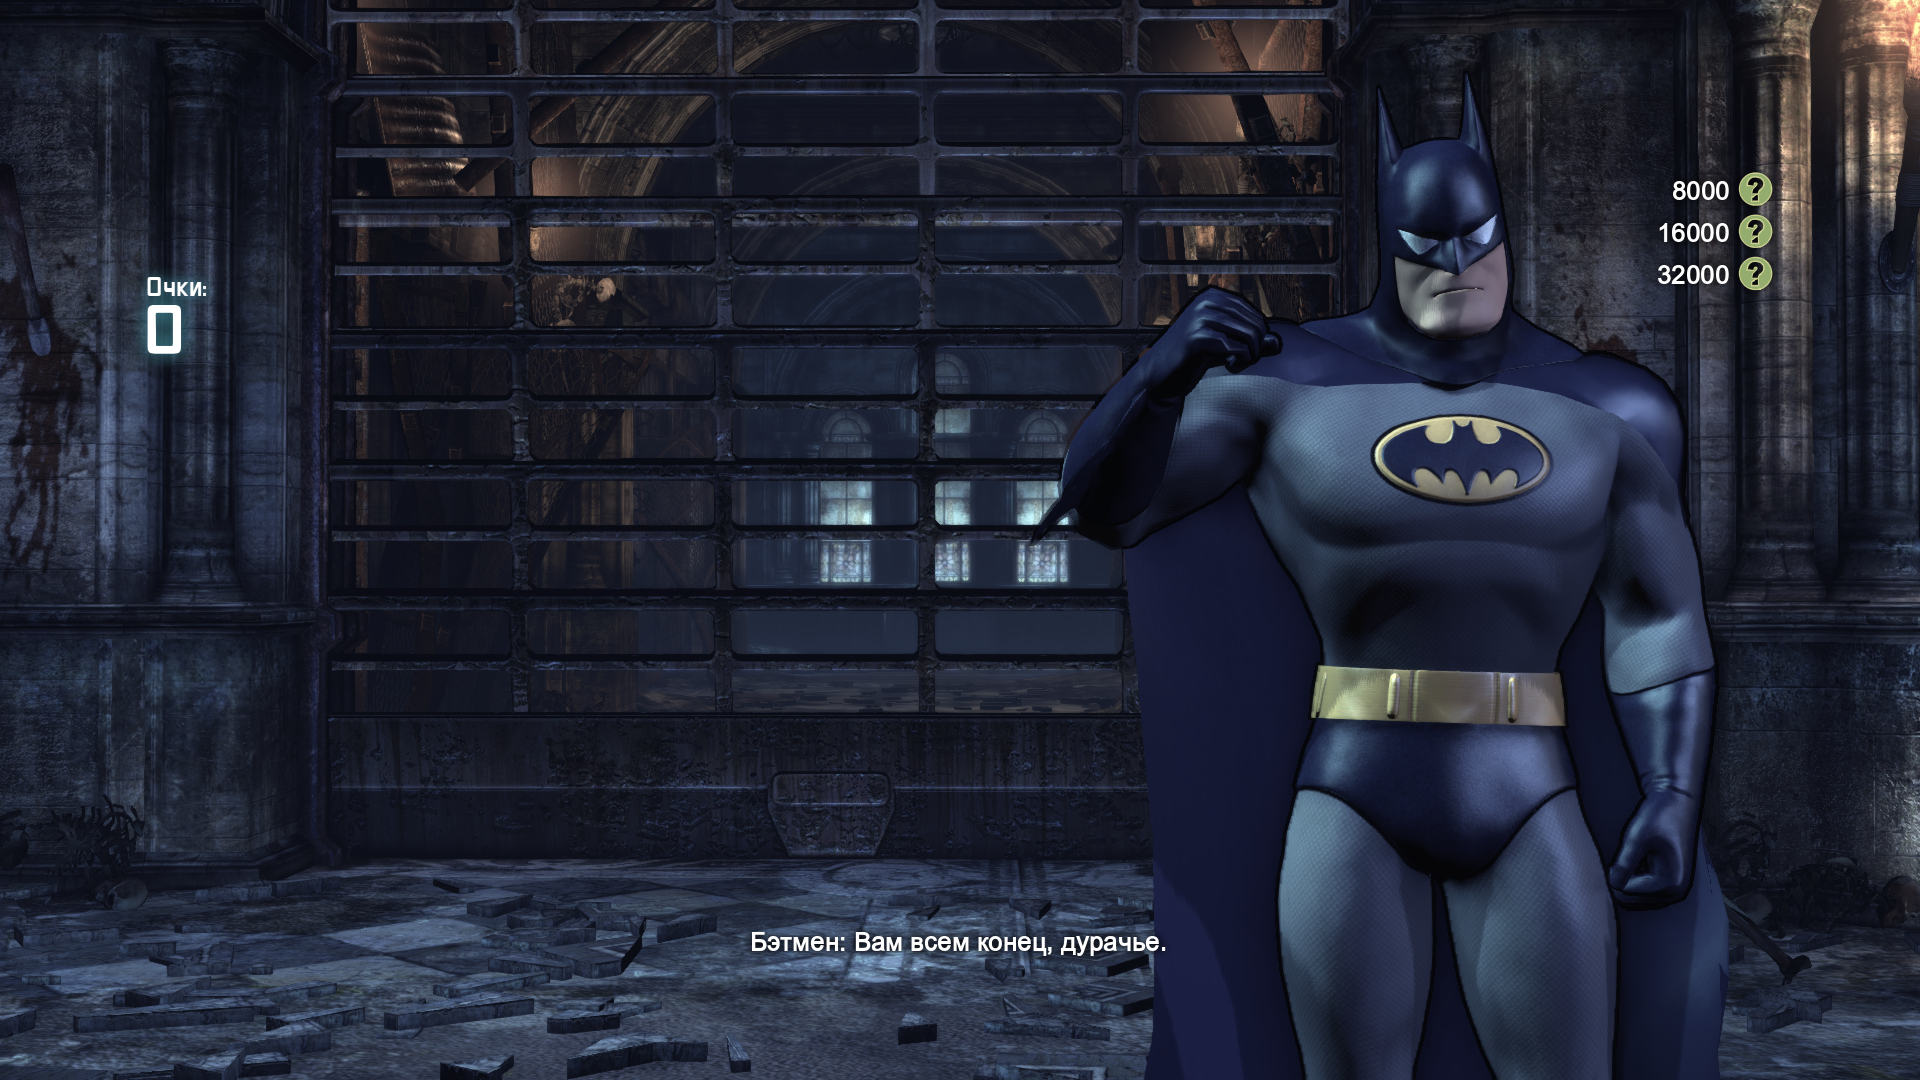 Arkham City Skins Pack Pictures to Pin on Pinterest ...